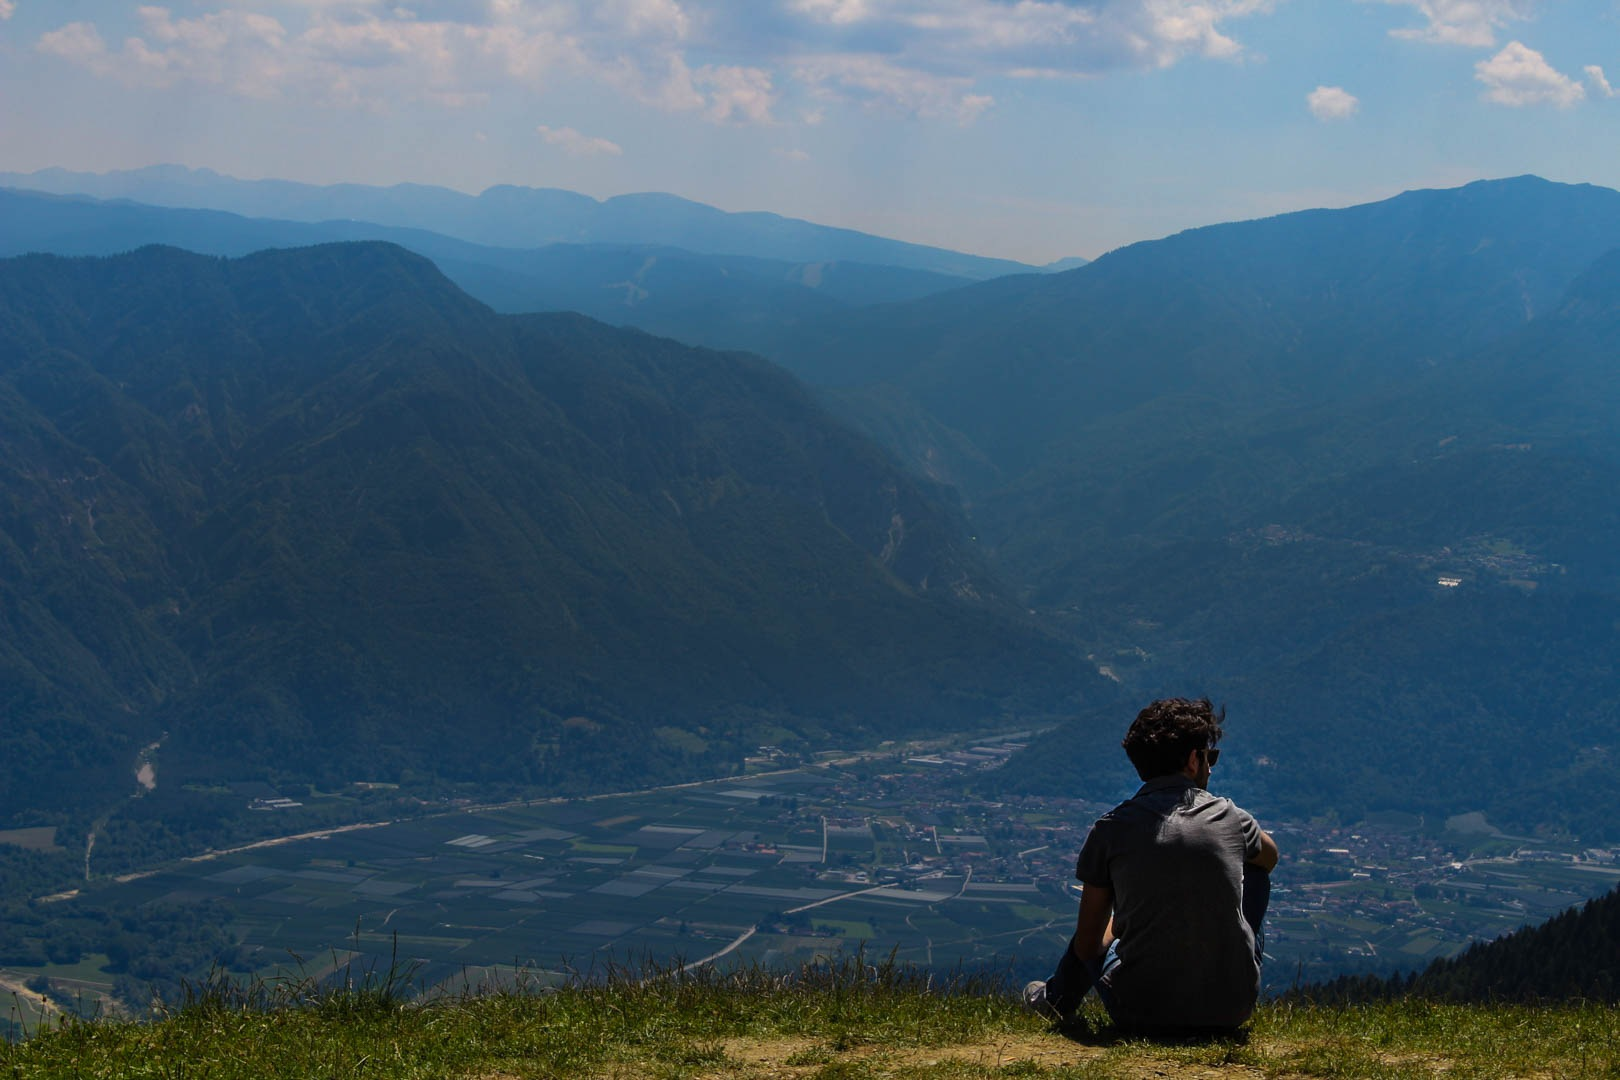 relax on the top of the mountain by Manuel Castronuovo